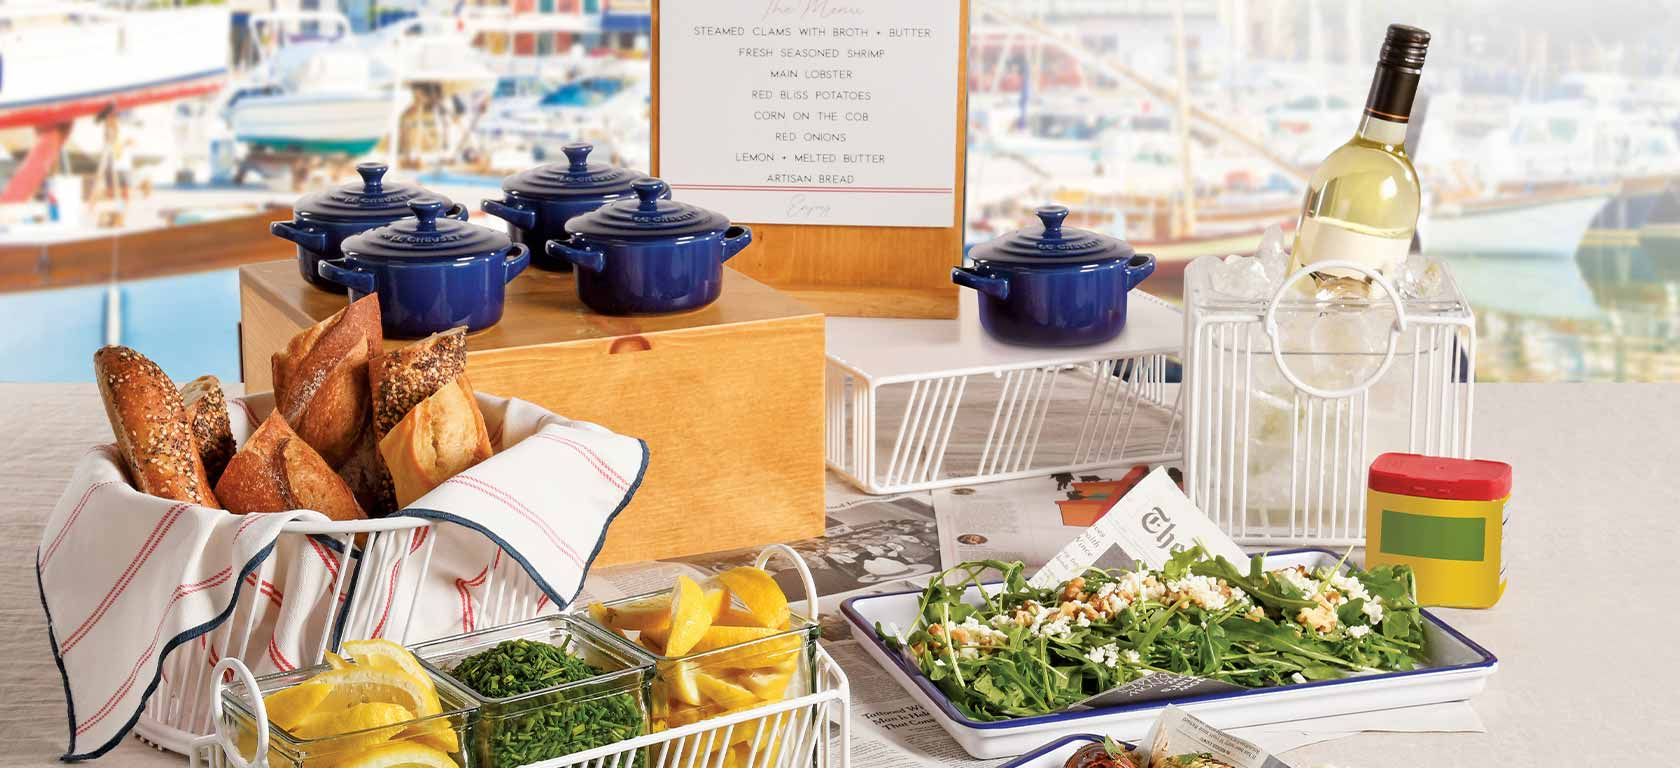 Array of blue ceramic pots rurrounded by fresh ingredients and a garden salad.